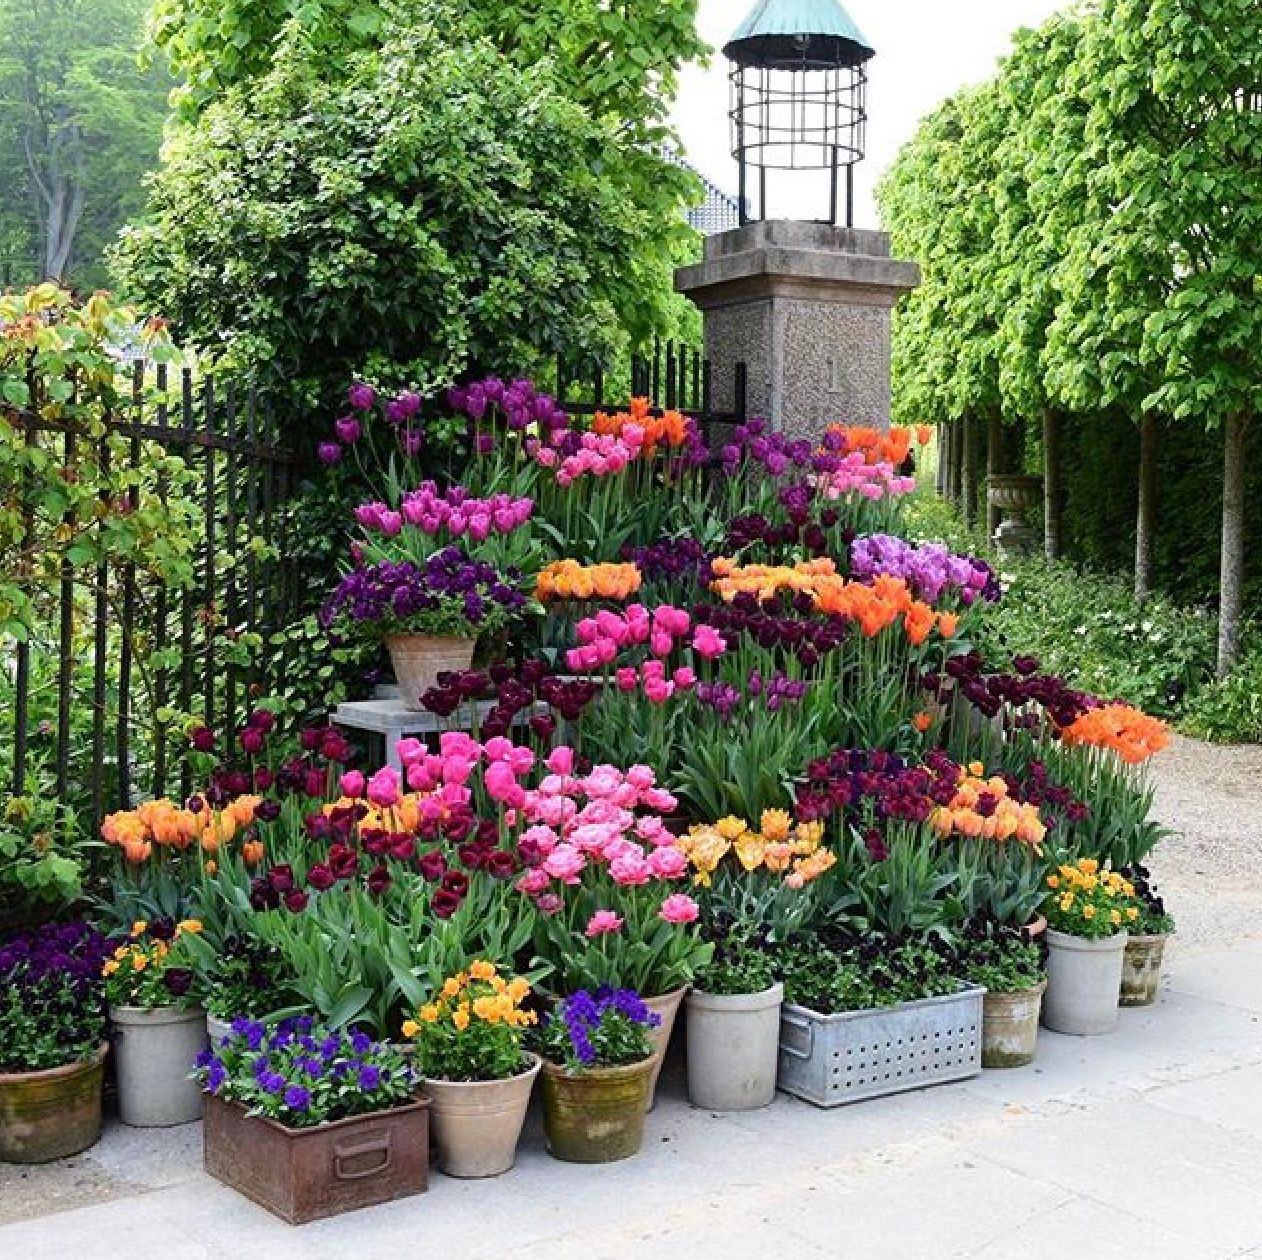 Spring Flowers And Yard Landscaping Ideas 20 Tulip Bed: Small Flower Pots, Backyard Landscaping